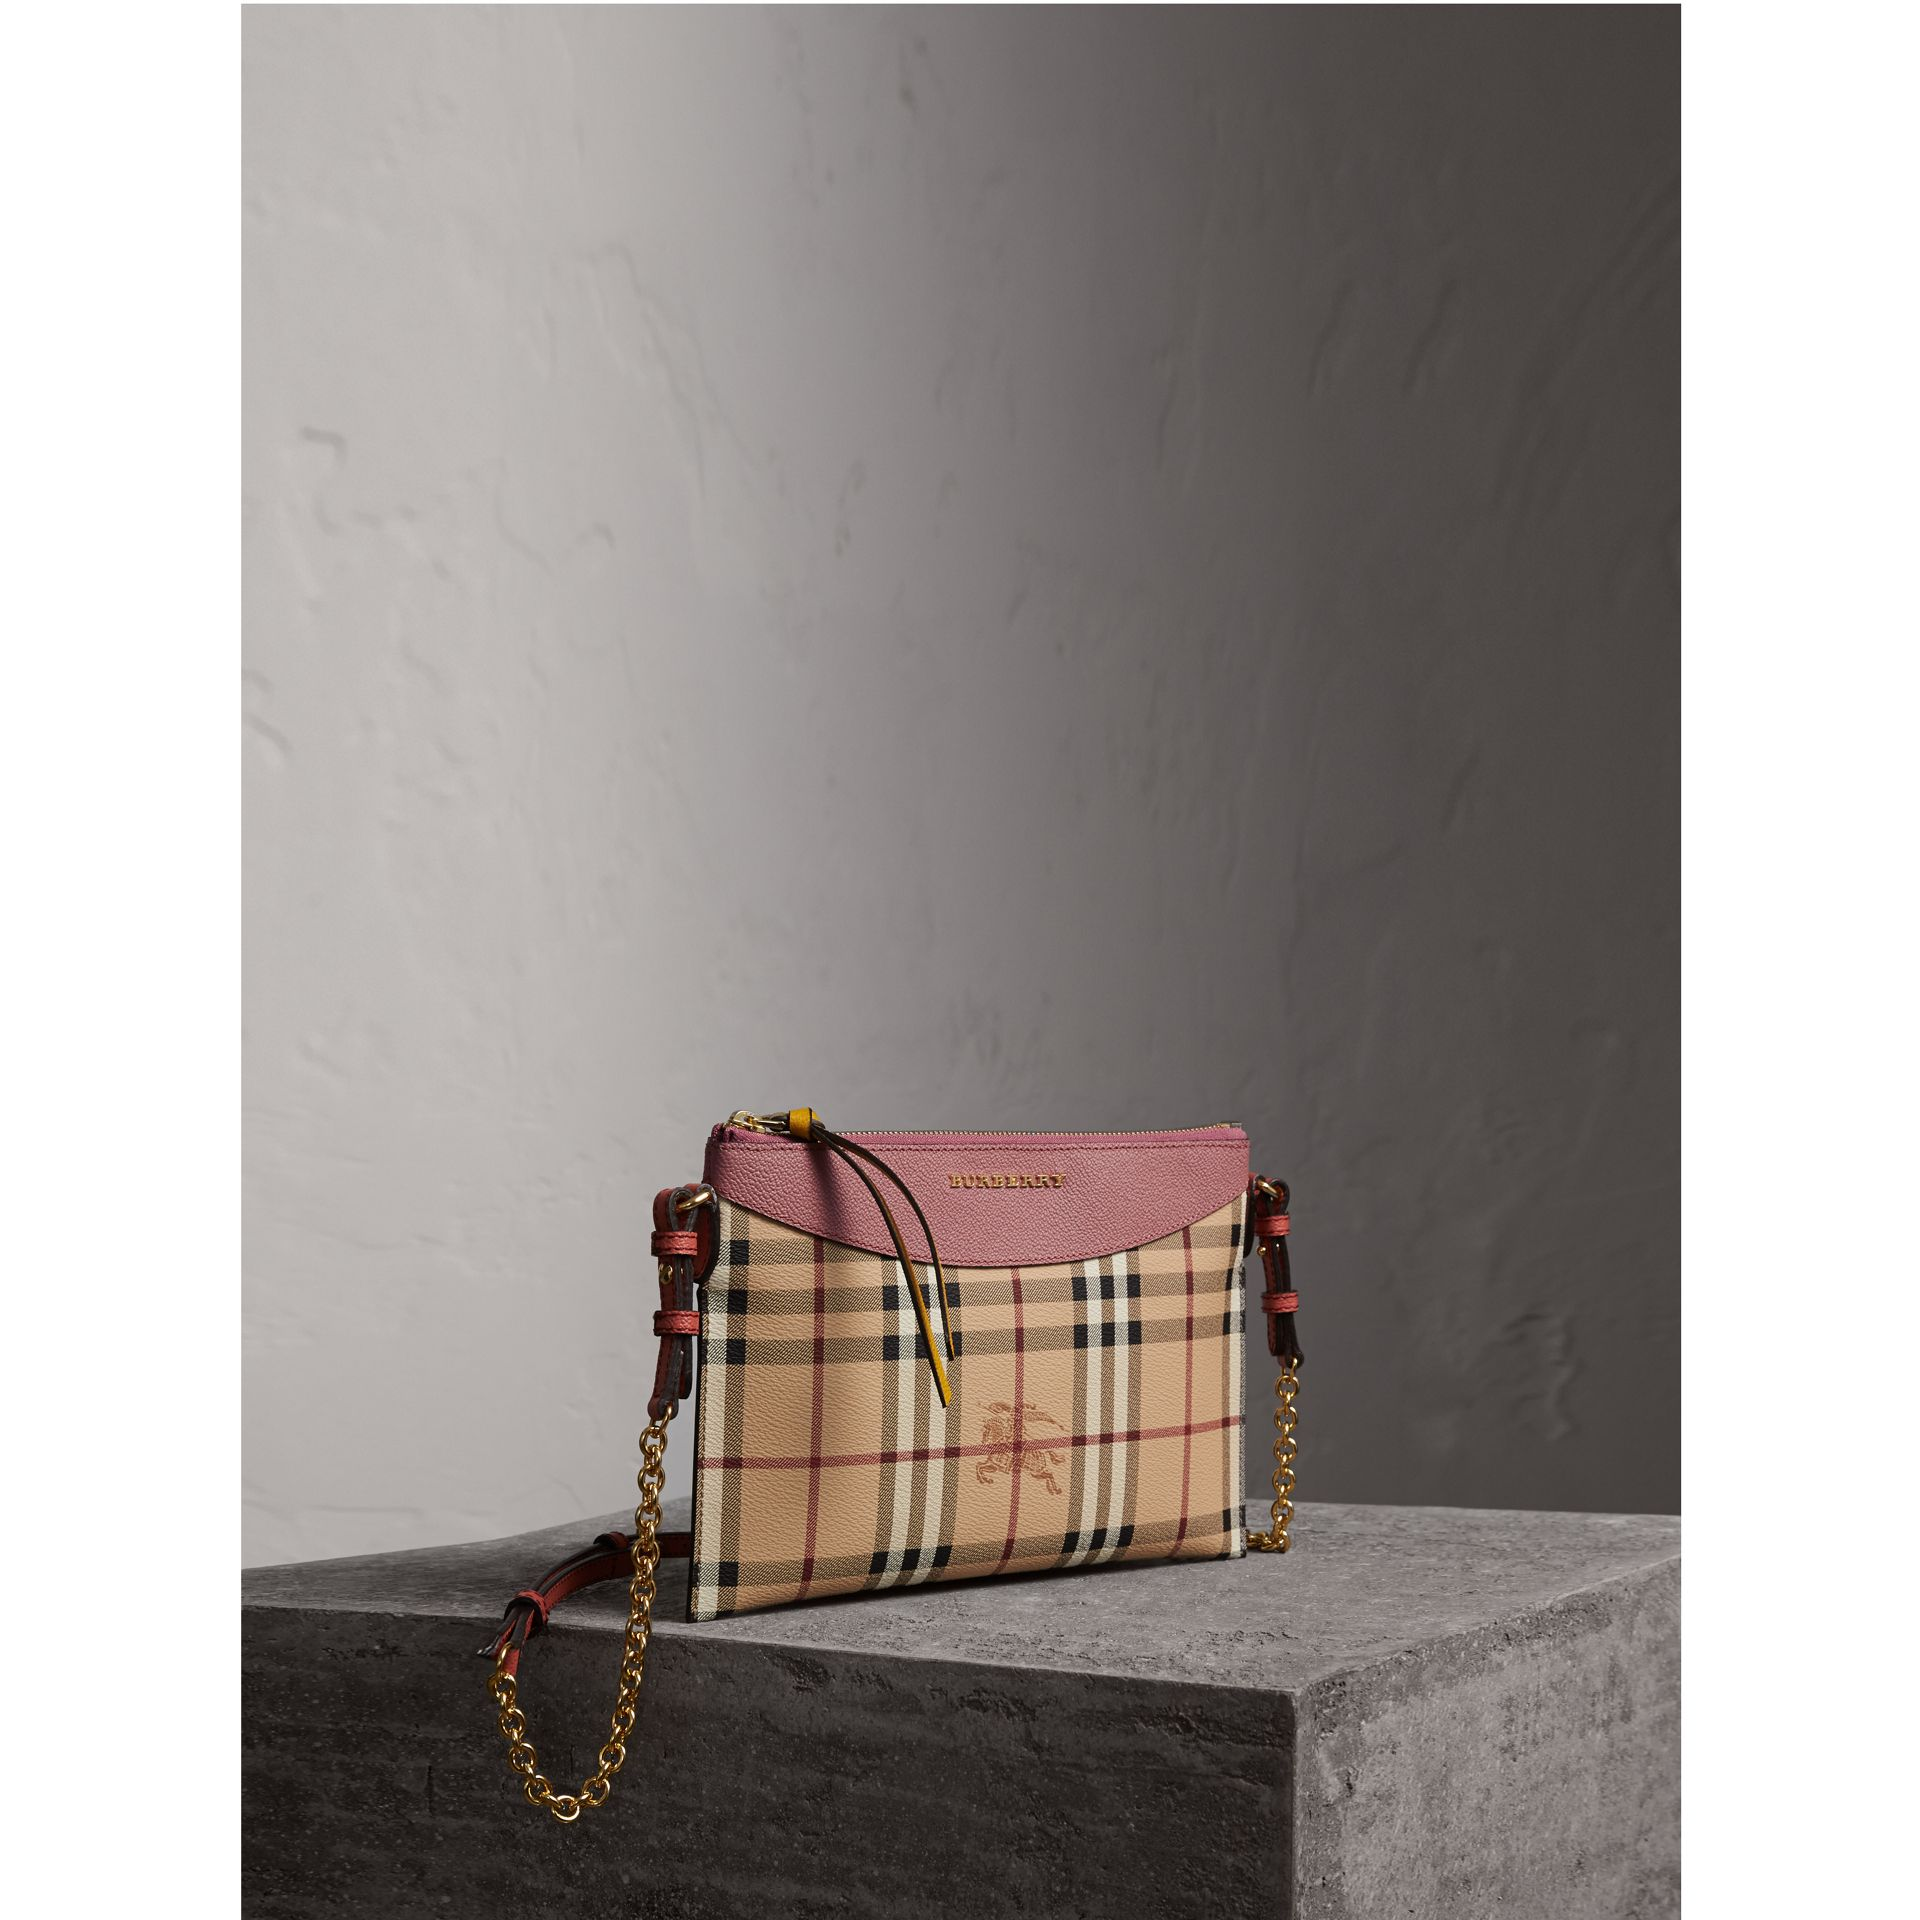 Haymarket Check and Two-tone Leather Clutch Bag in Dusty Pink/multicolour - Women | Burberry - gallery image 1